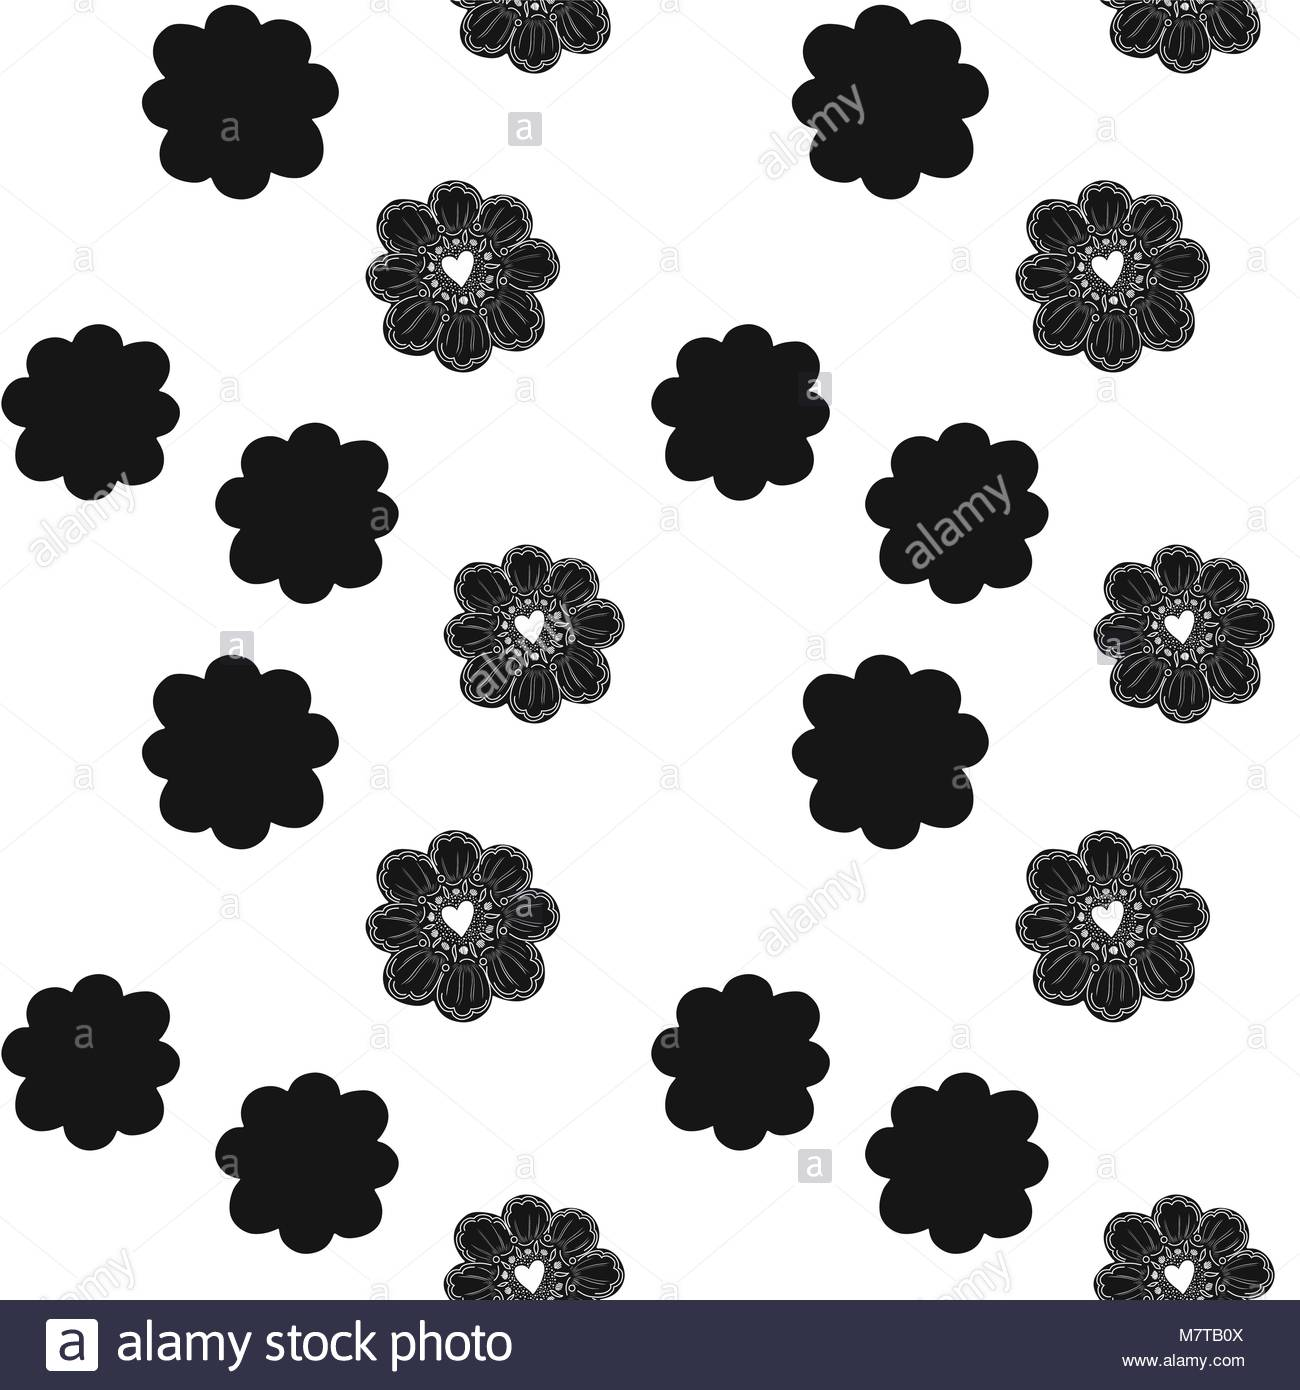 Seamless Pattern Simple Flower Element Doodle Decoration Easy To Change Color Geometric Arrangement White Background